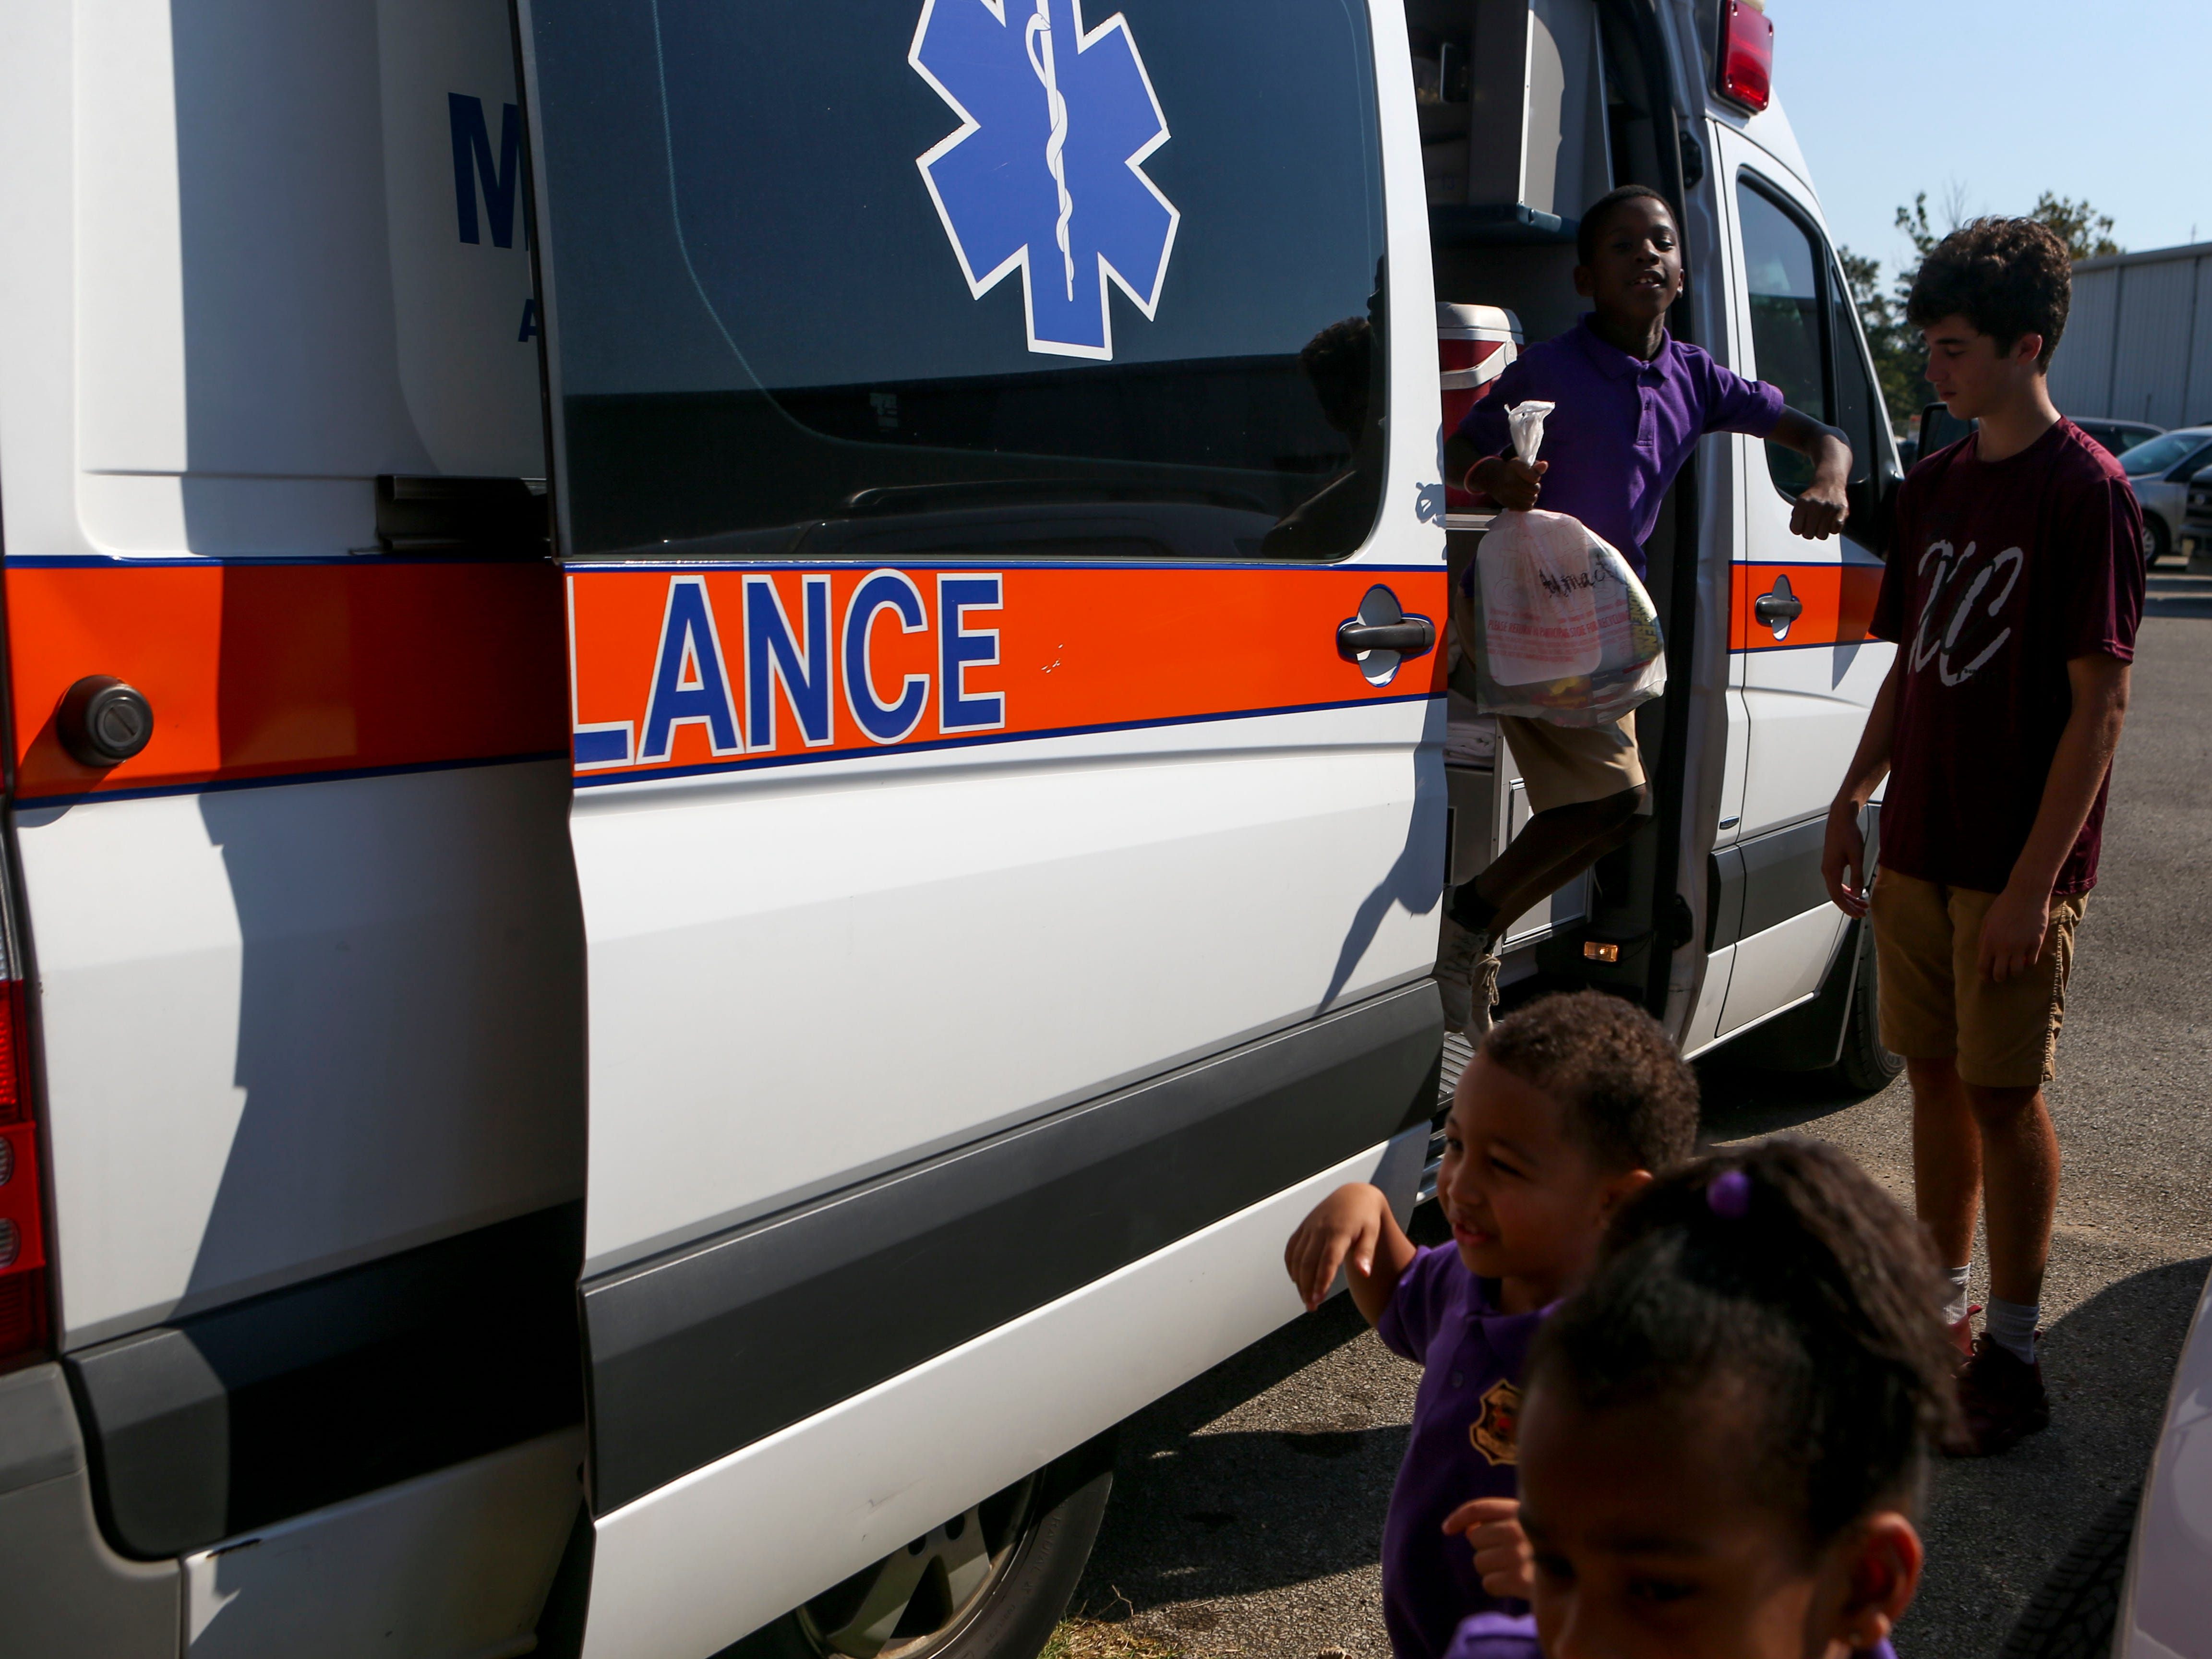 Kids exit an ambulance brought for them to explore at the Day of Champions celebration held at Jackson Fairgrounds Park in Jackson, Tenn., on Wednesday, Sept. 19, 2018.